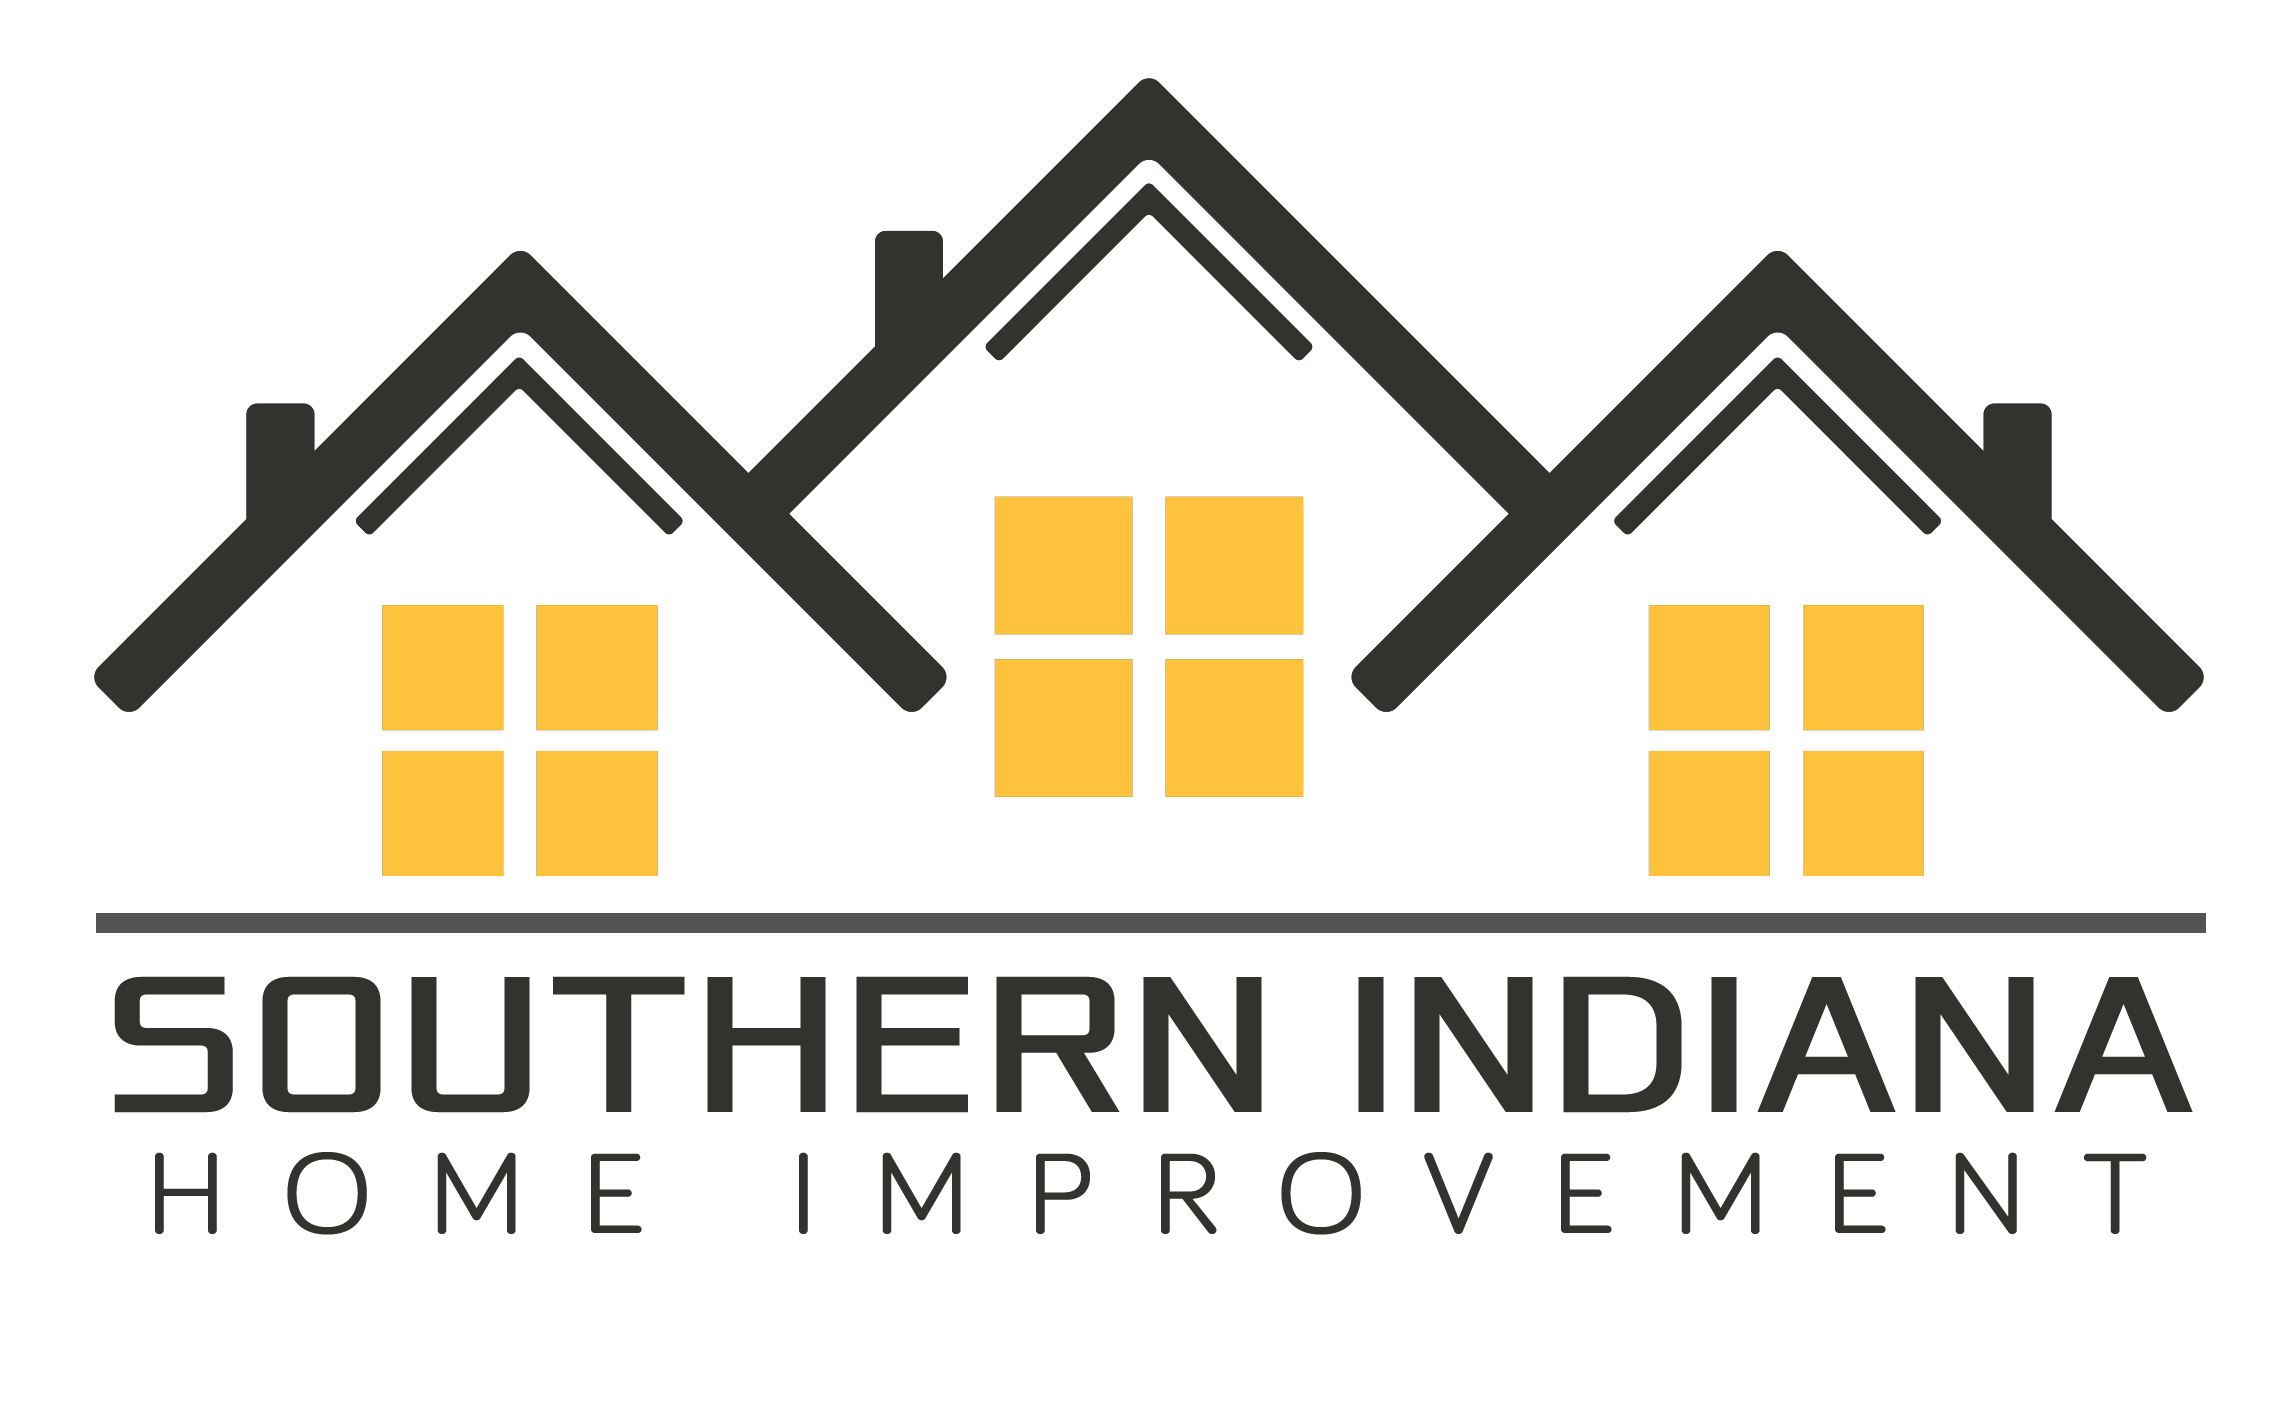 Southern Indiana Home Improvement Service